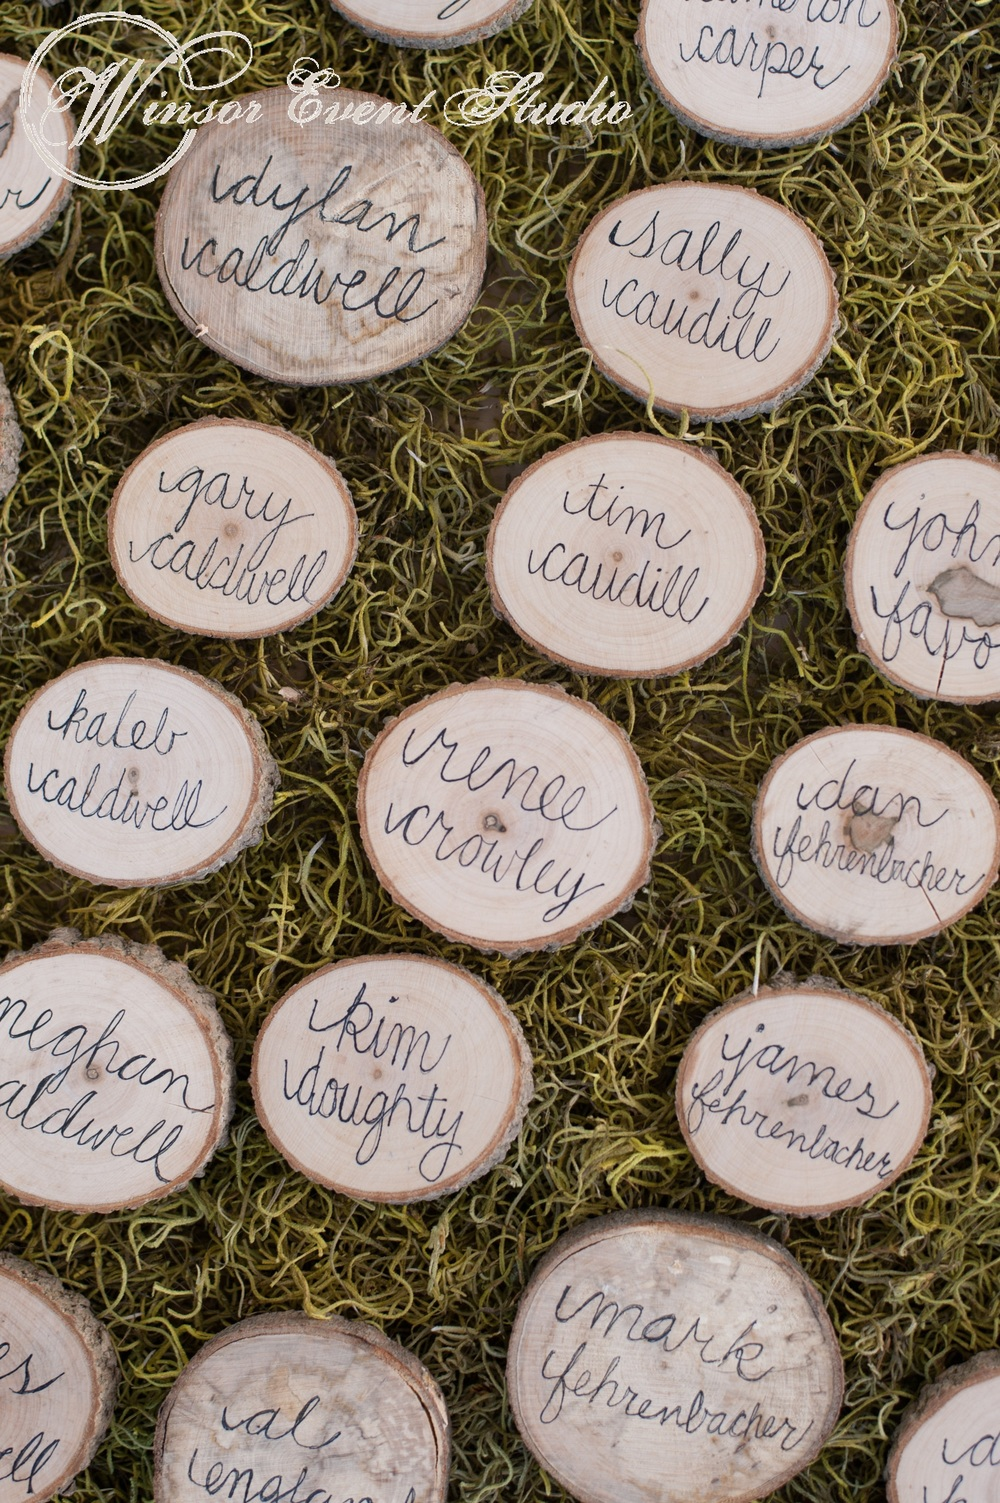 Cut wood discs served as a unique escort card display atop a sheet of lush green moss